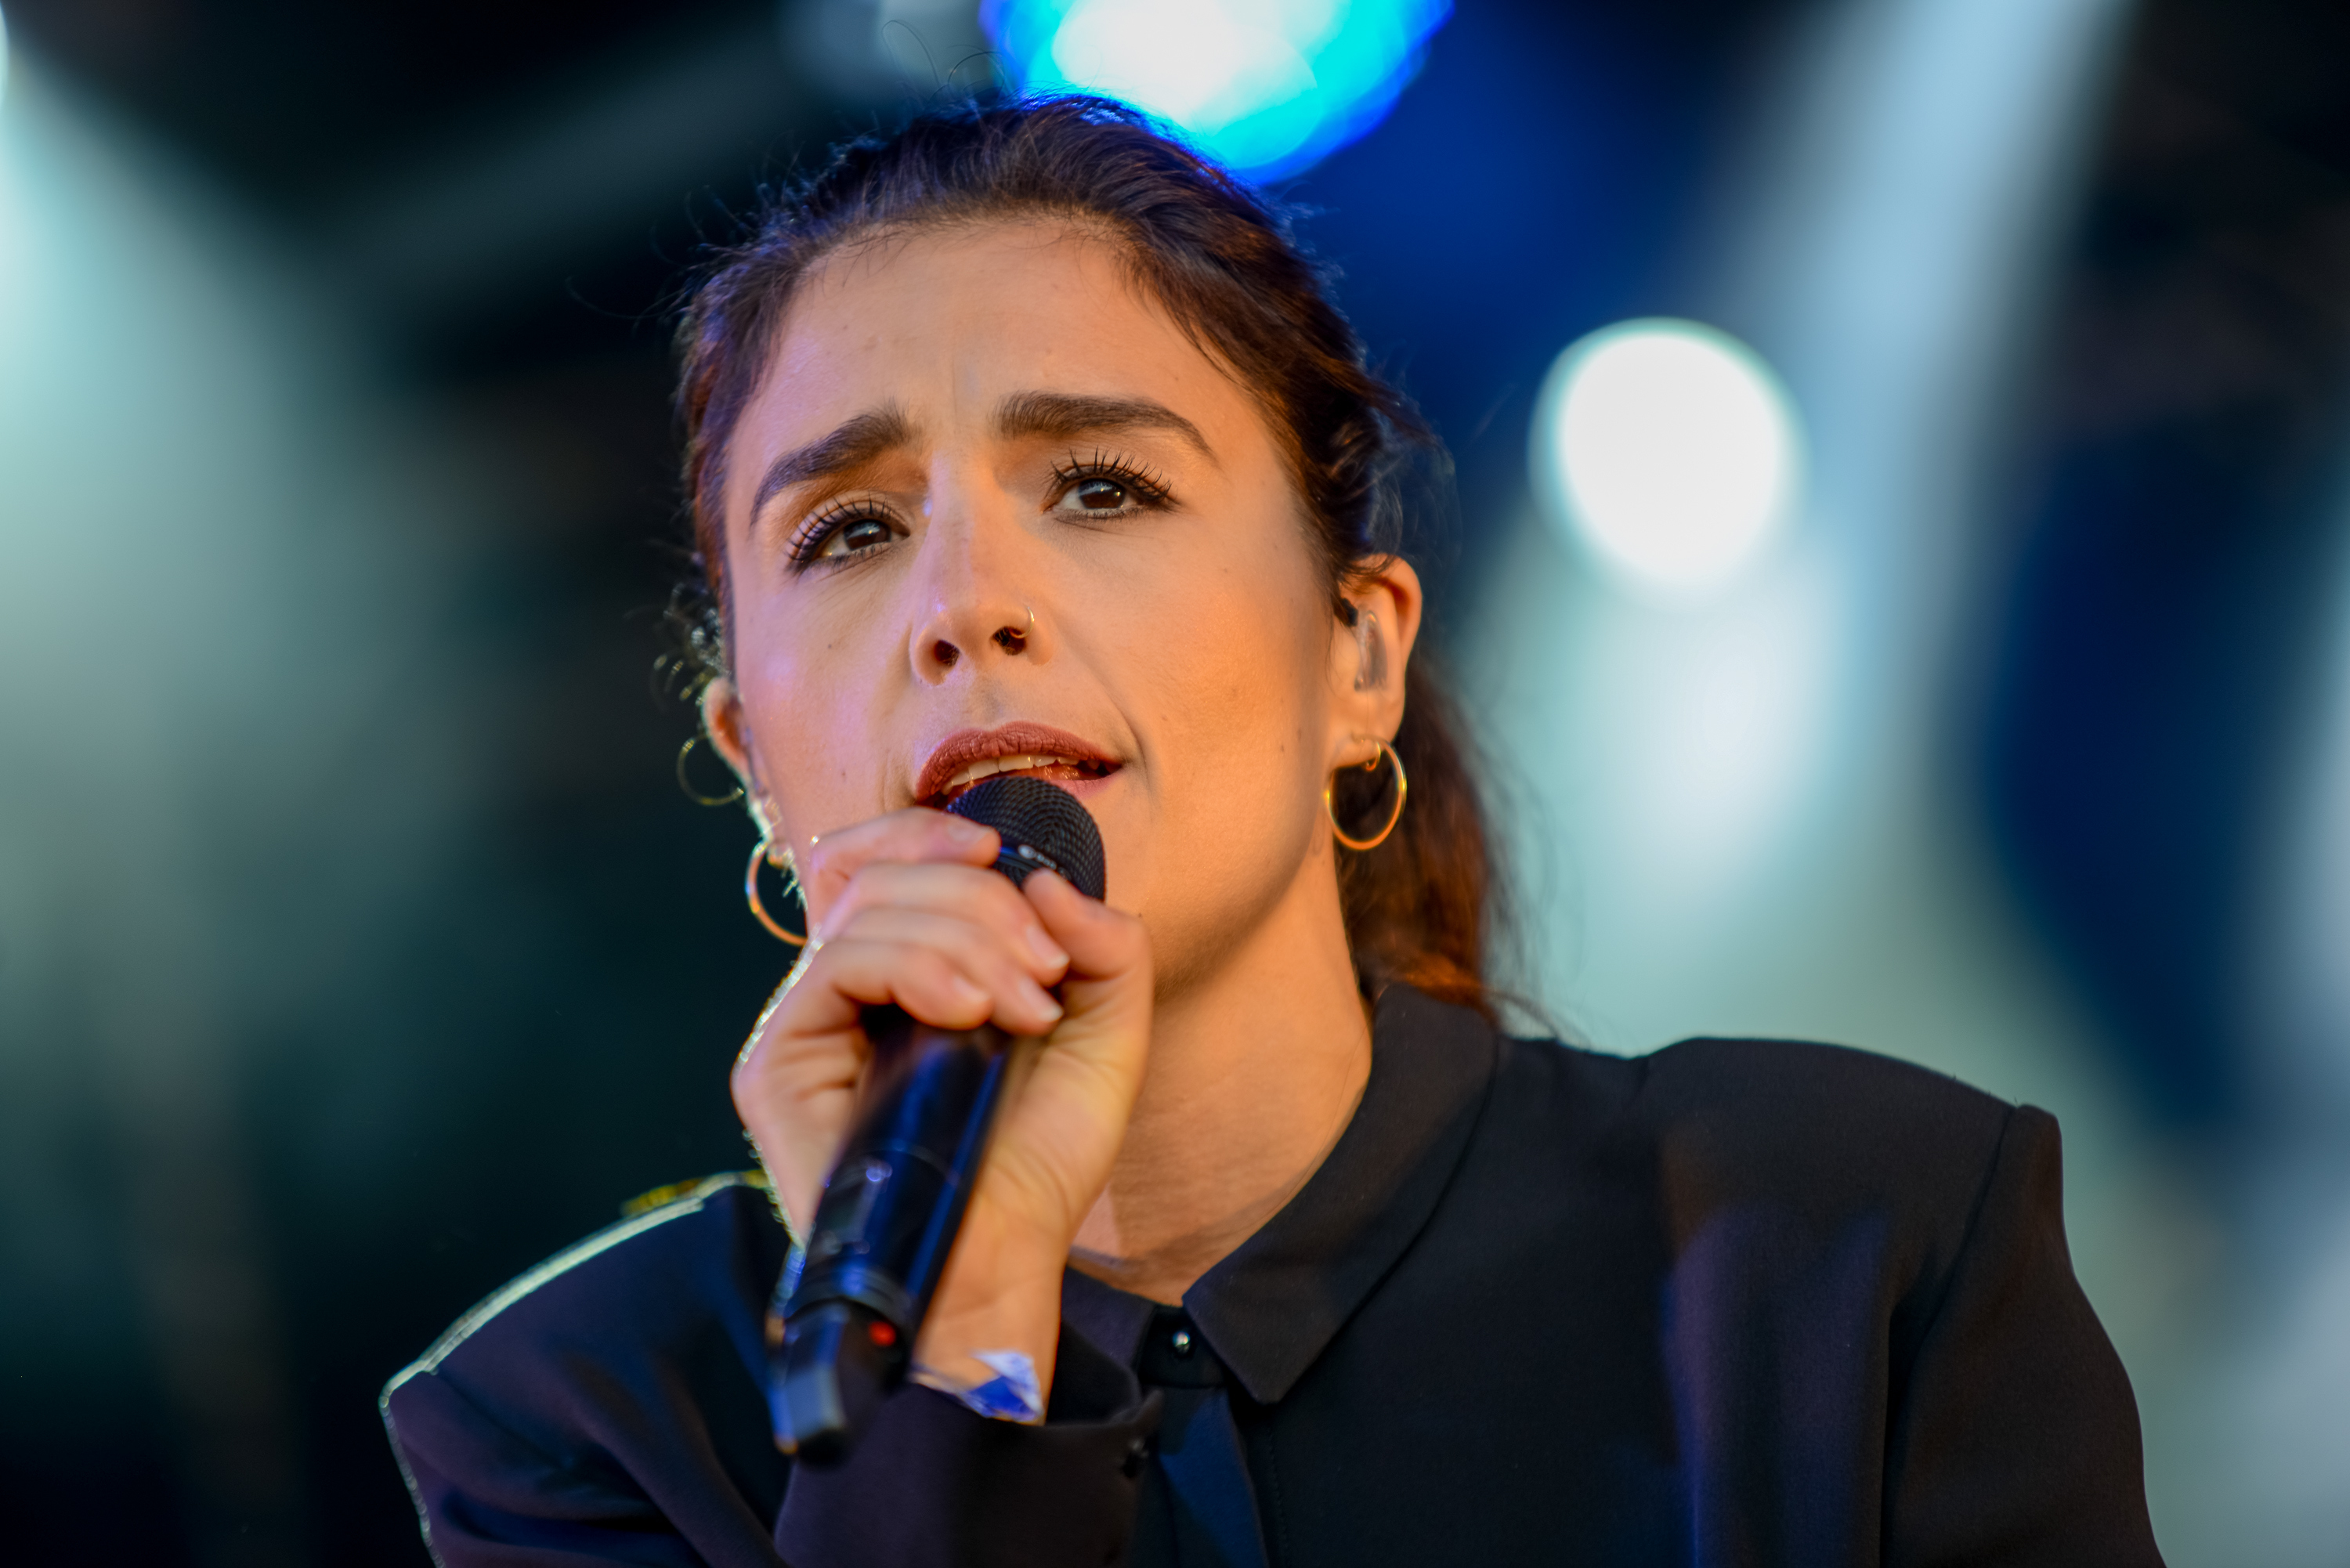 Jessie Ware announces she's 'dropping' a baby this year